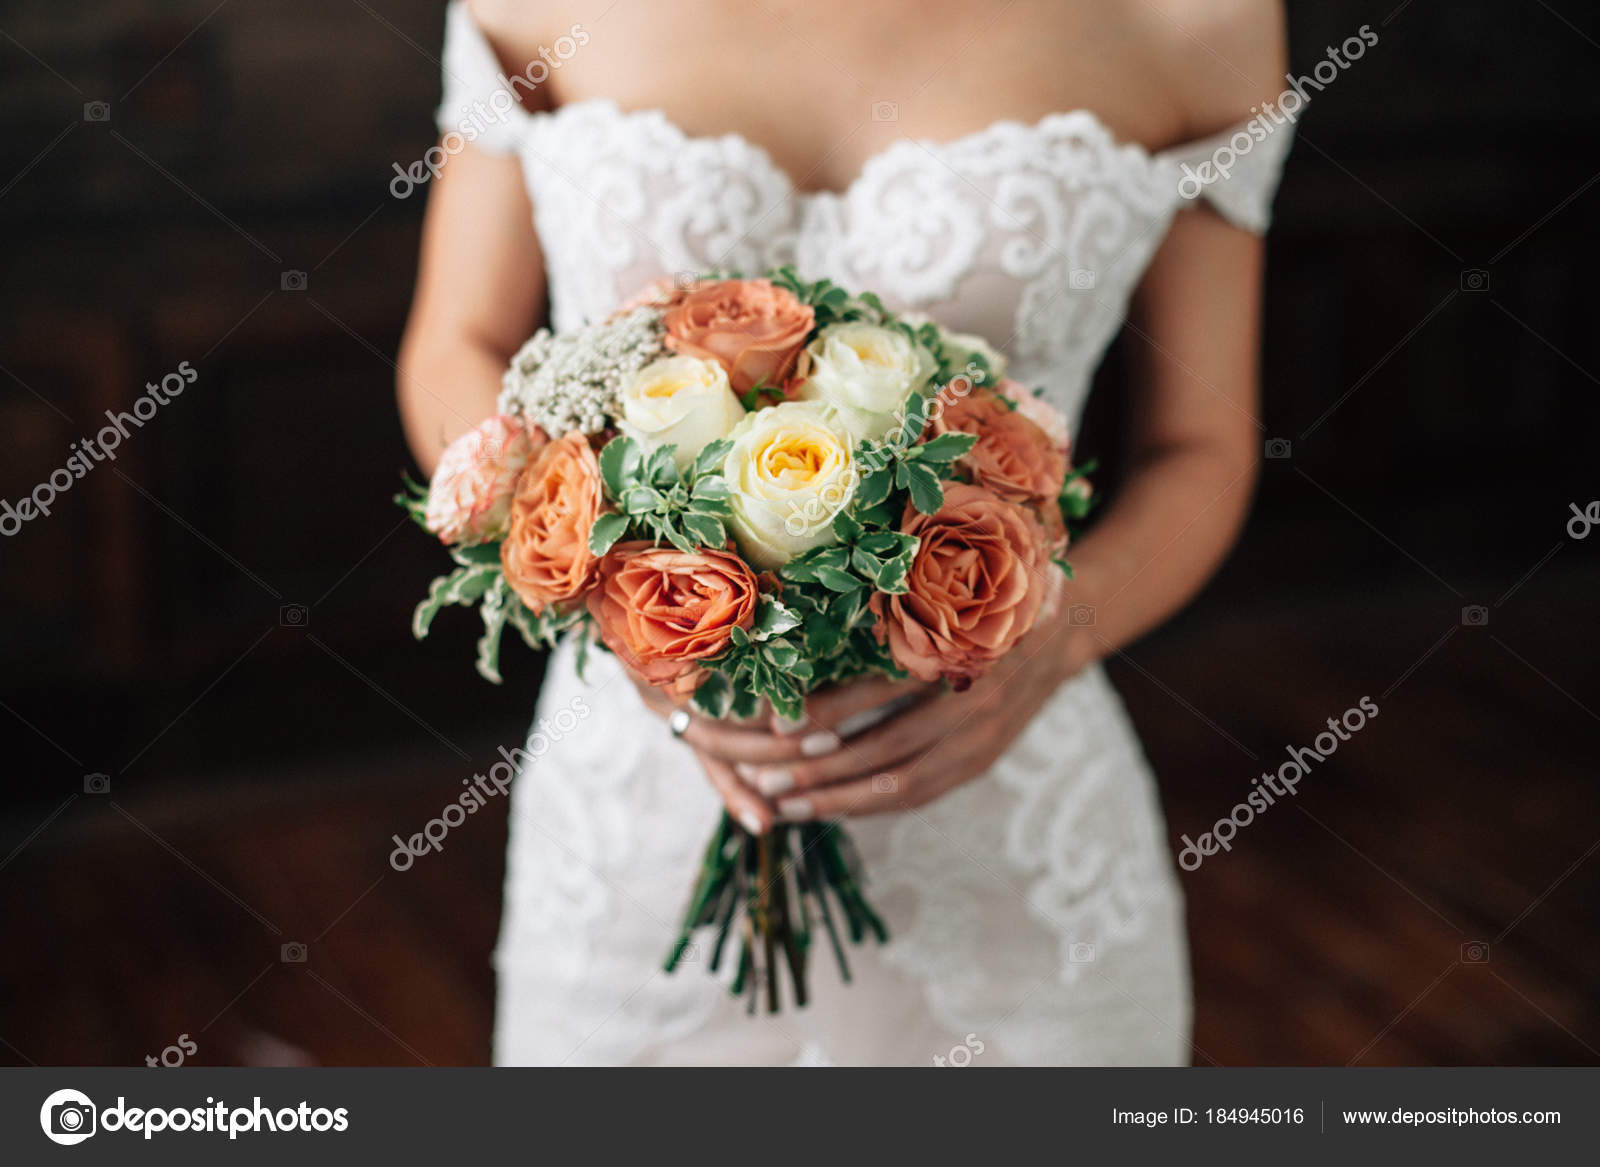 Wedding Bouquet In Bride Hand Bride In Sexy Wtite Dress With R